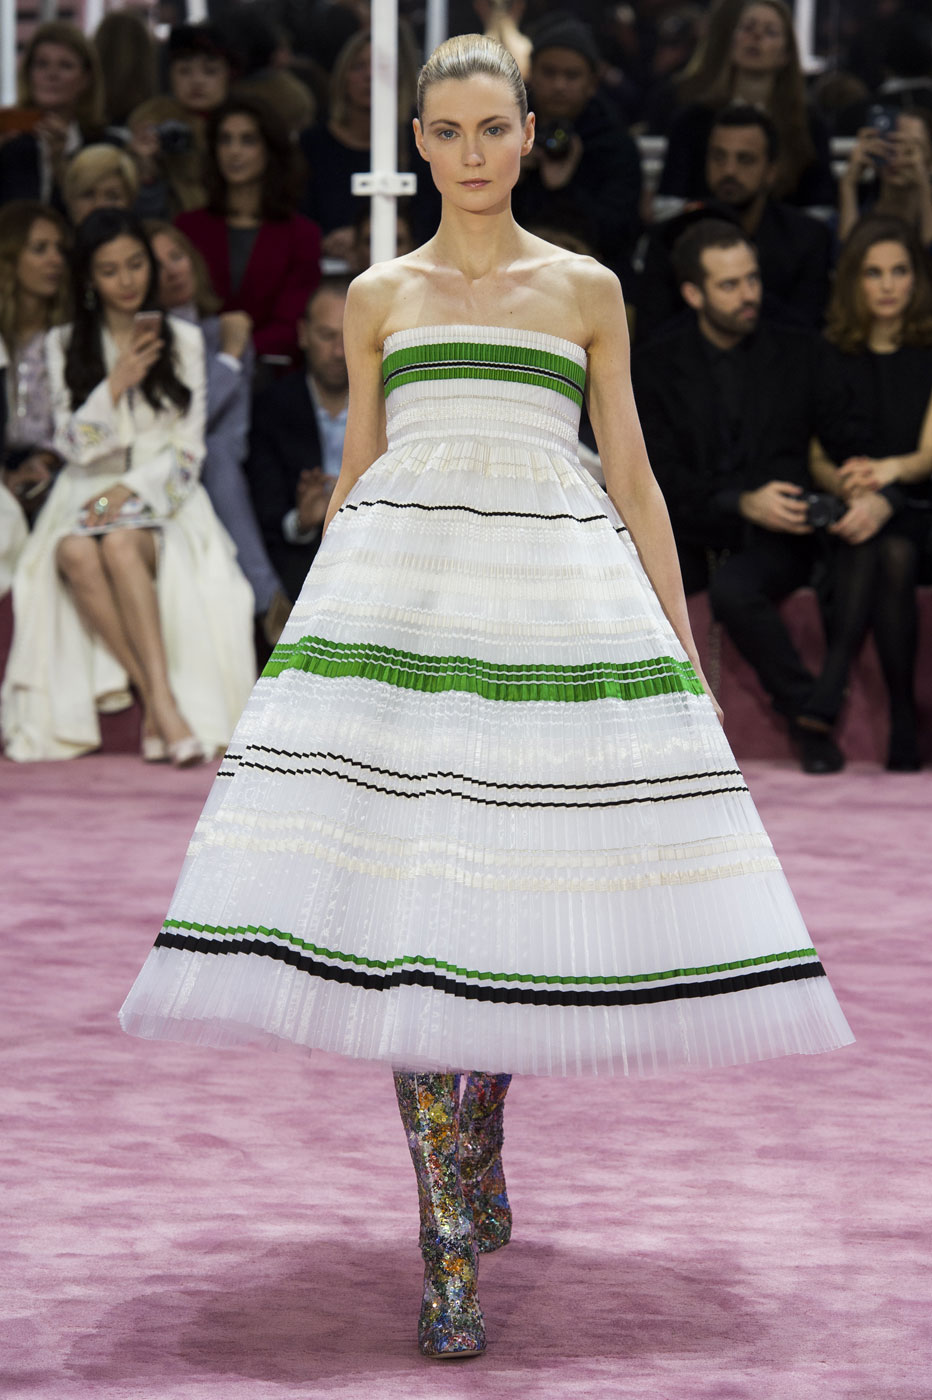 Christian-Dior-fashion-runway-show-haute-couture-paris-spring-summer-2015-the-impression-106